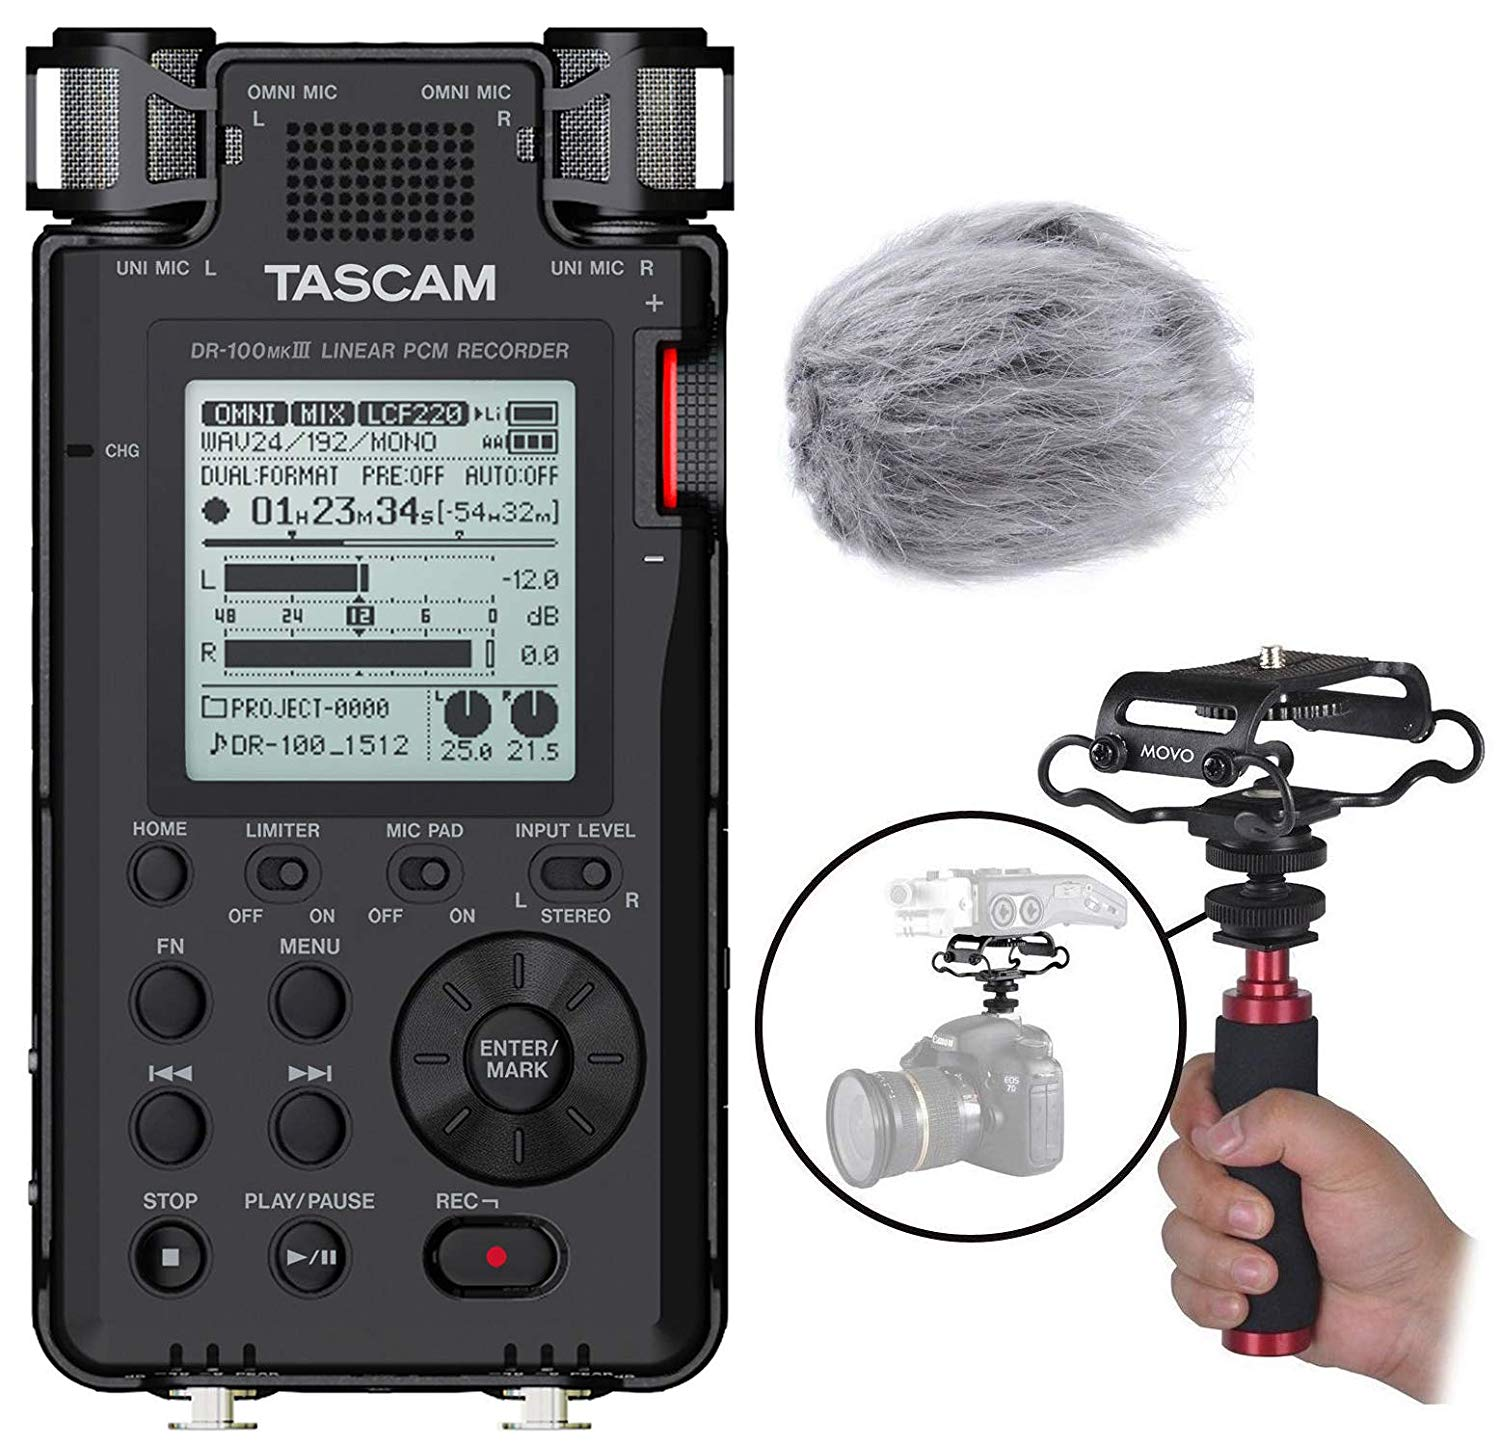 Tascam DR-100mkIII Linear PCM Stereo Handheld Digital Audio Recorder Bundle with Movo Deadcat Windscreen, Shockmount, Camera Mount & Mic Grip